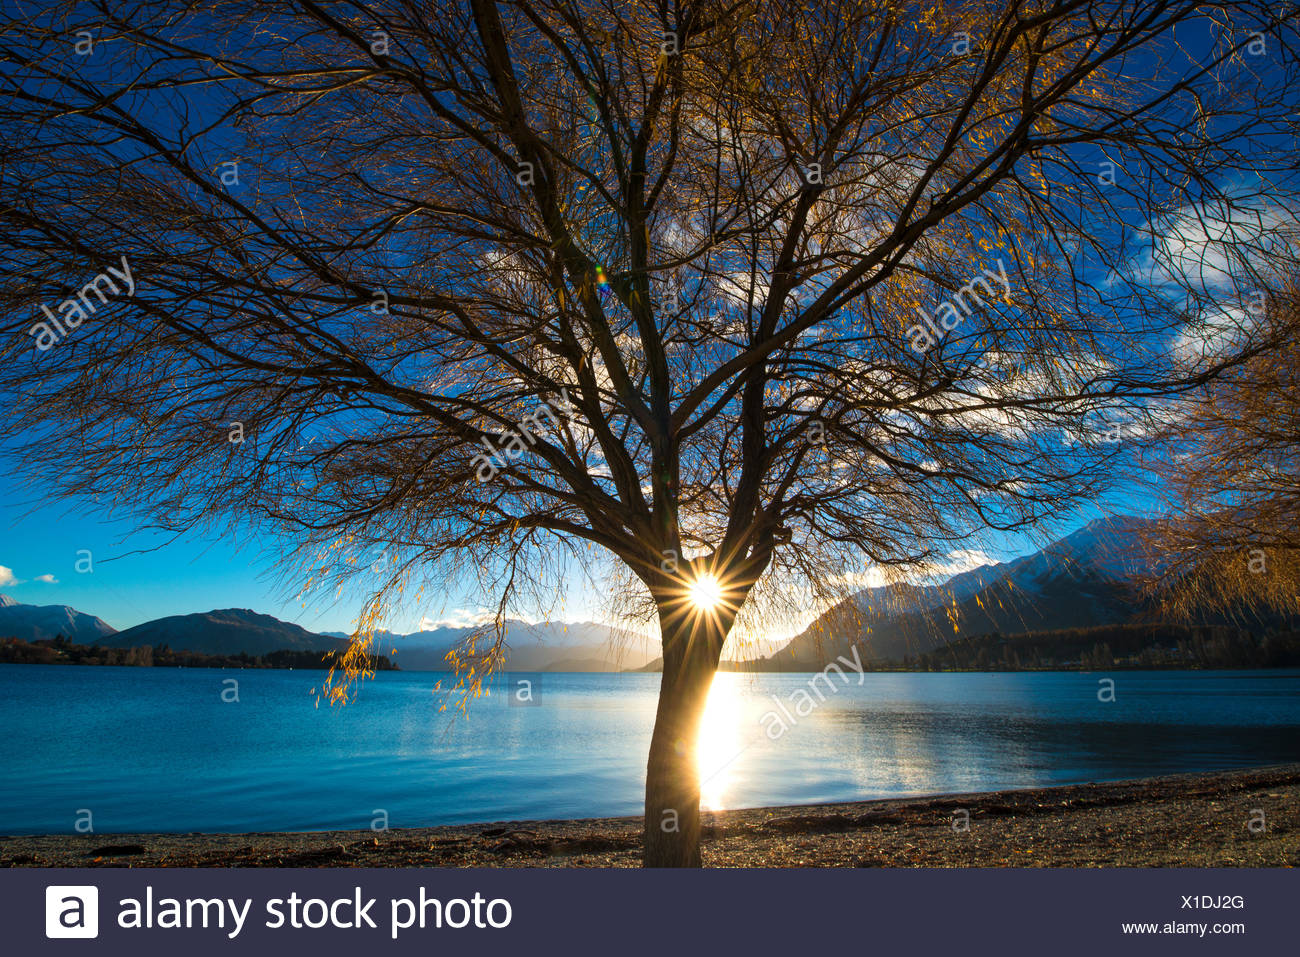 La NOUVELLE ZELANDE, le lac Wanaka, Sun shining through tree Photo Stock